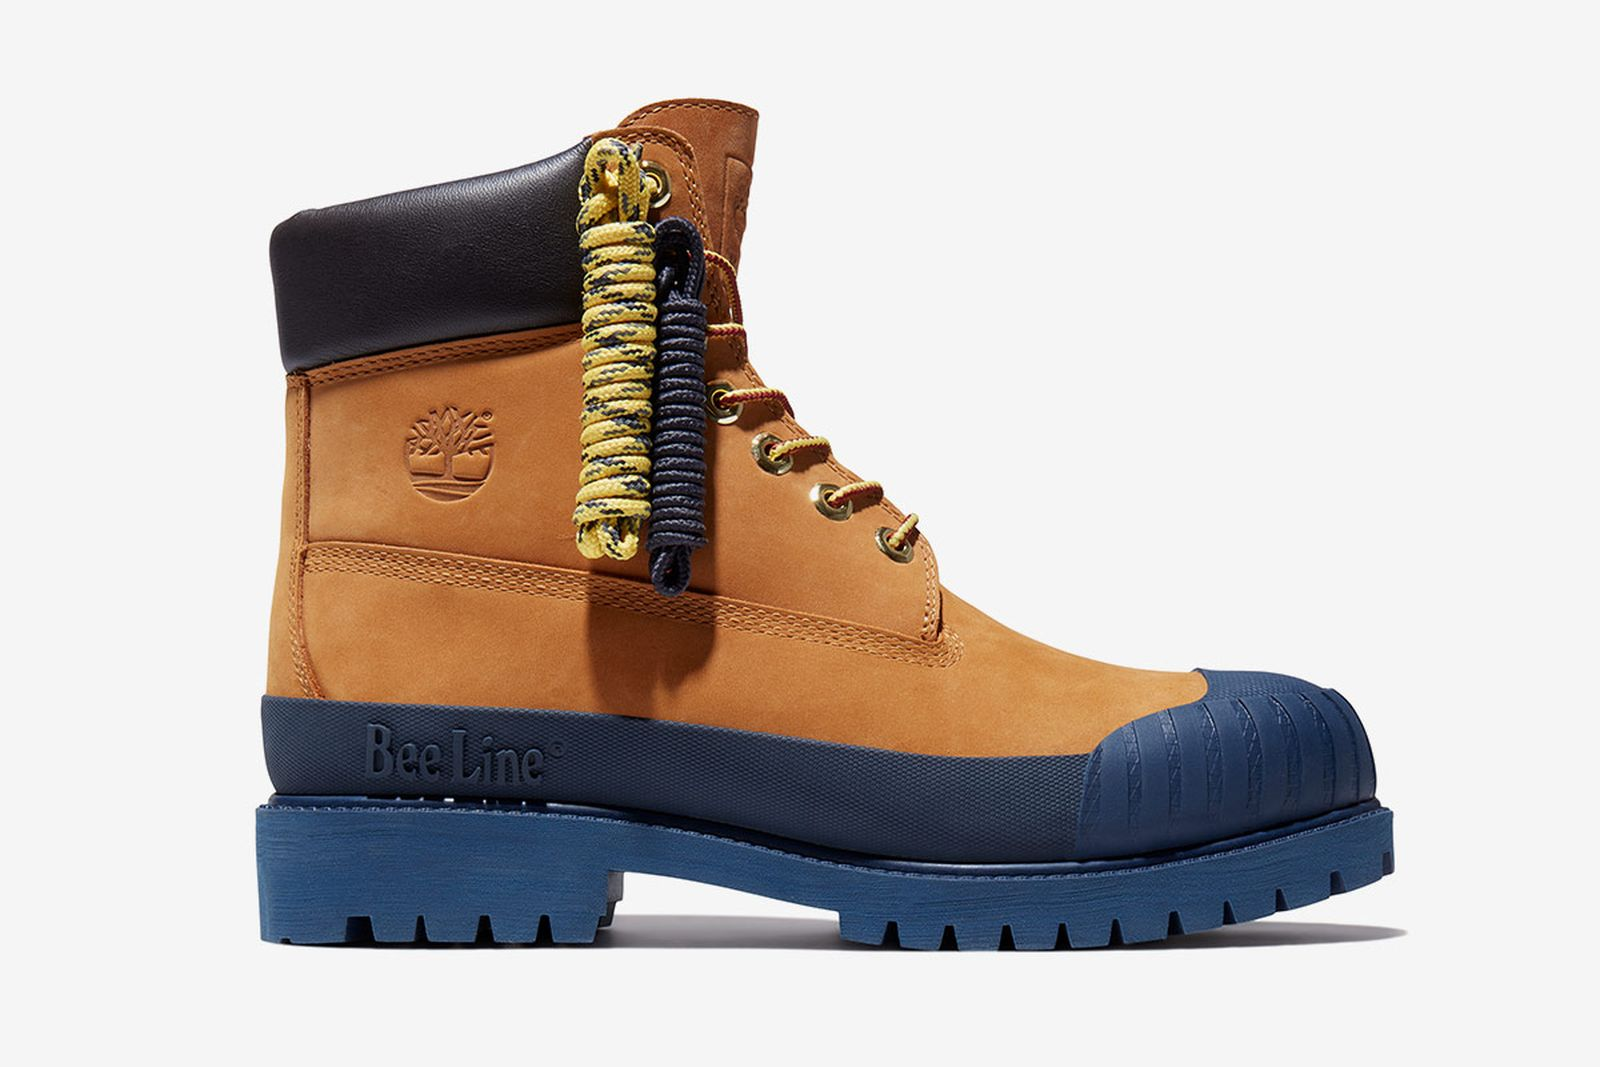 bee-line-billionaire-boys-club-timberland-boot-release-date-price-002